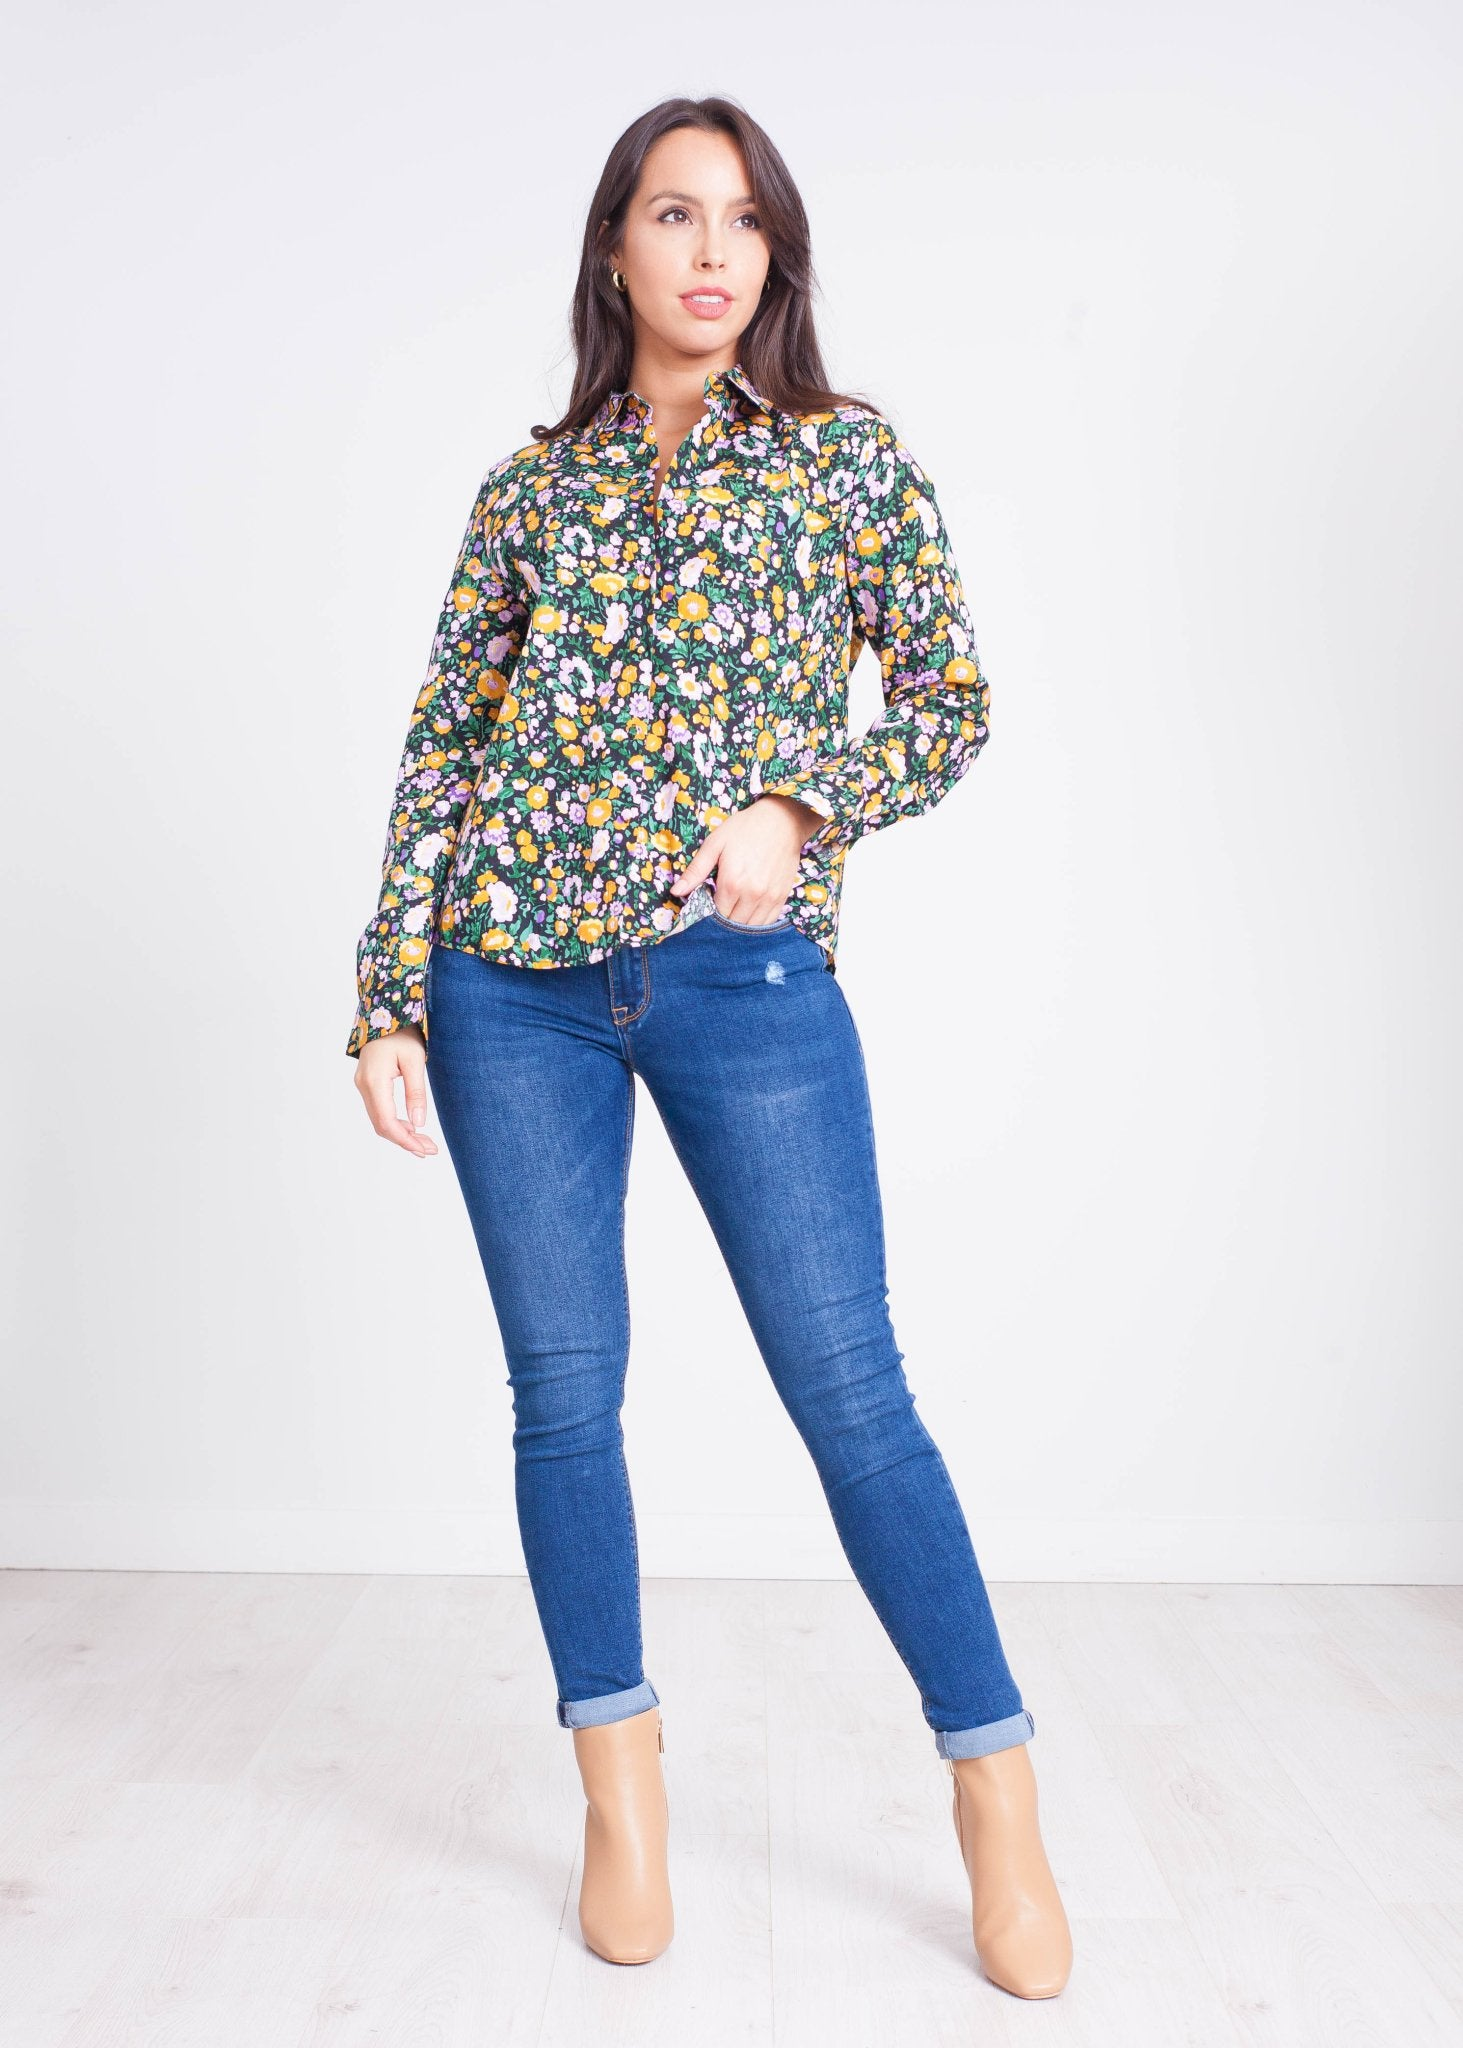 Priya Floral Shirt in Lilac & Orange - The Walk in Wardrobe